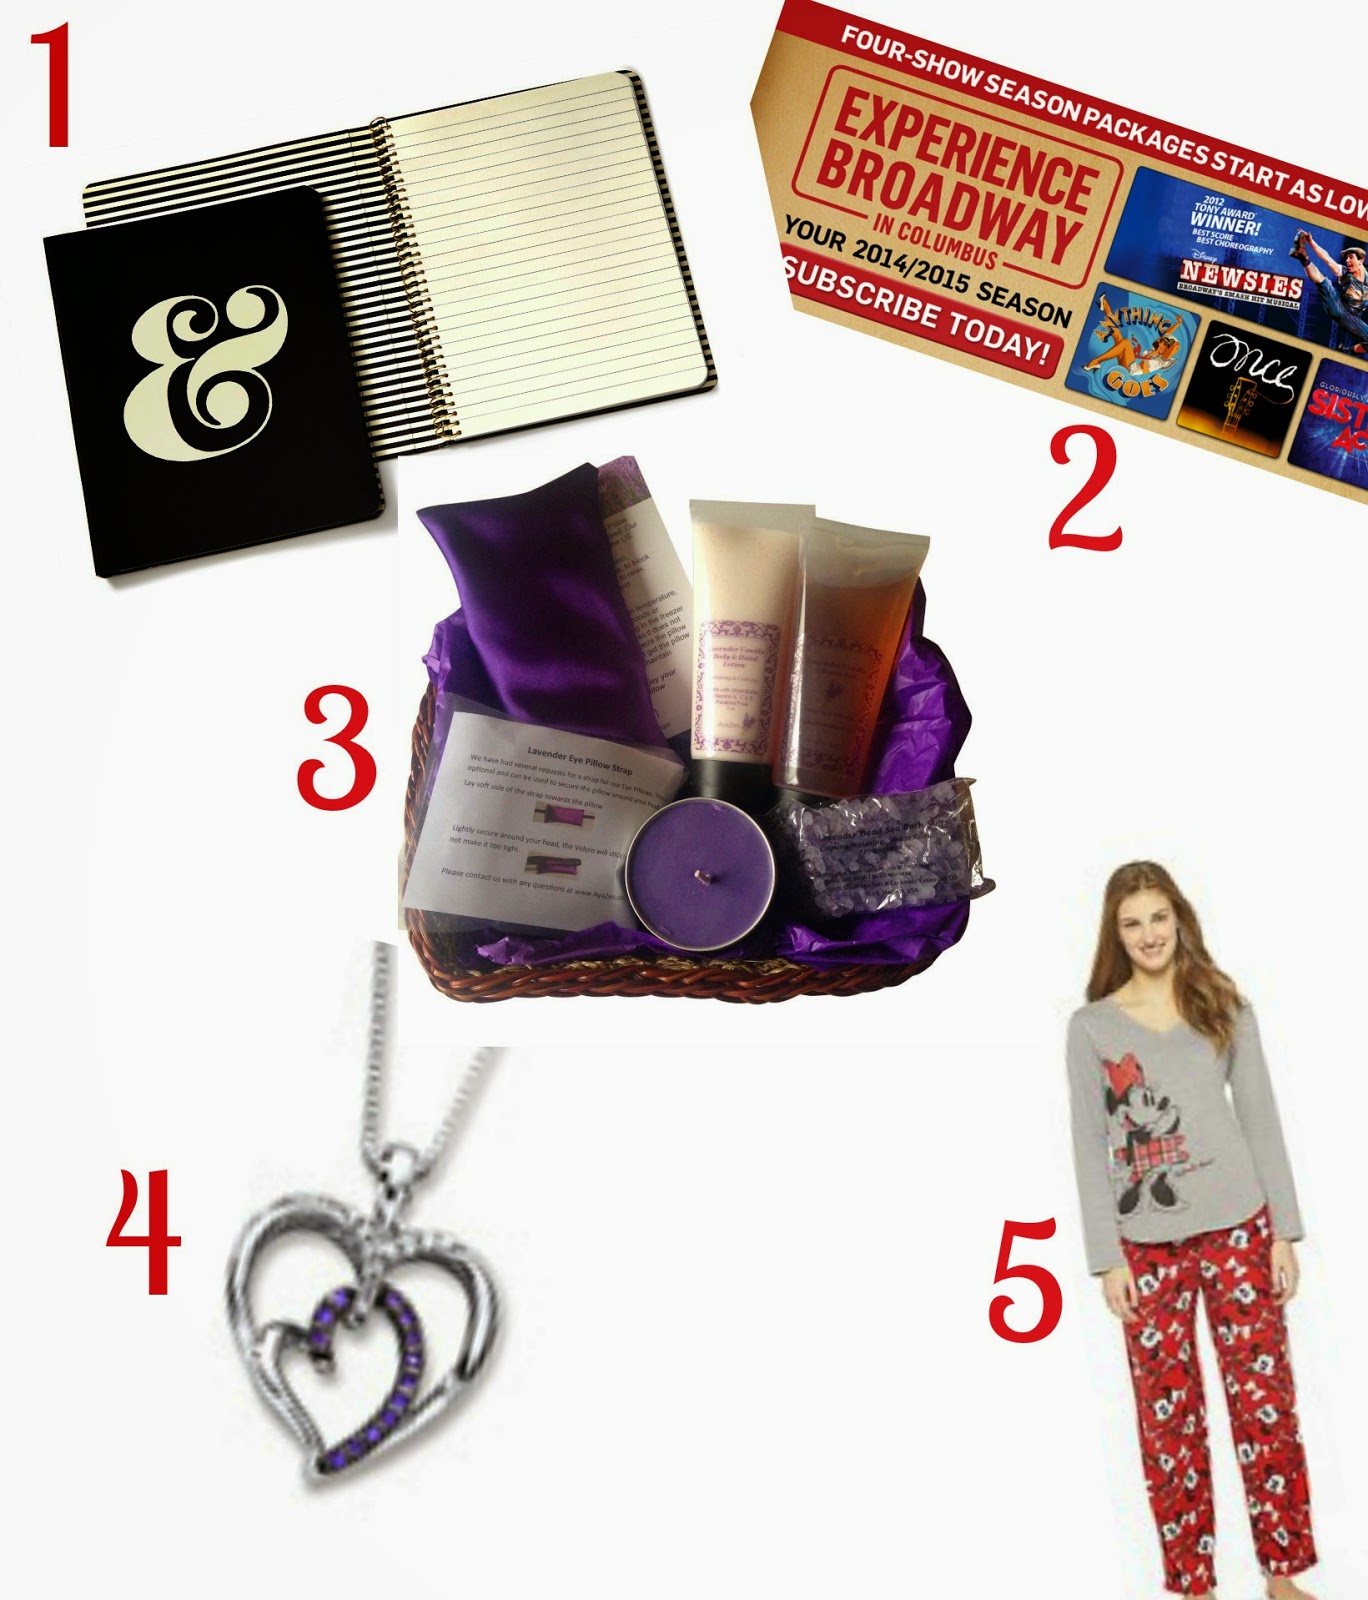 Gift guide for wife 2014